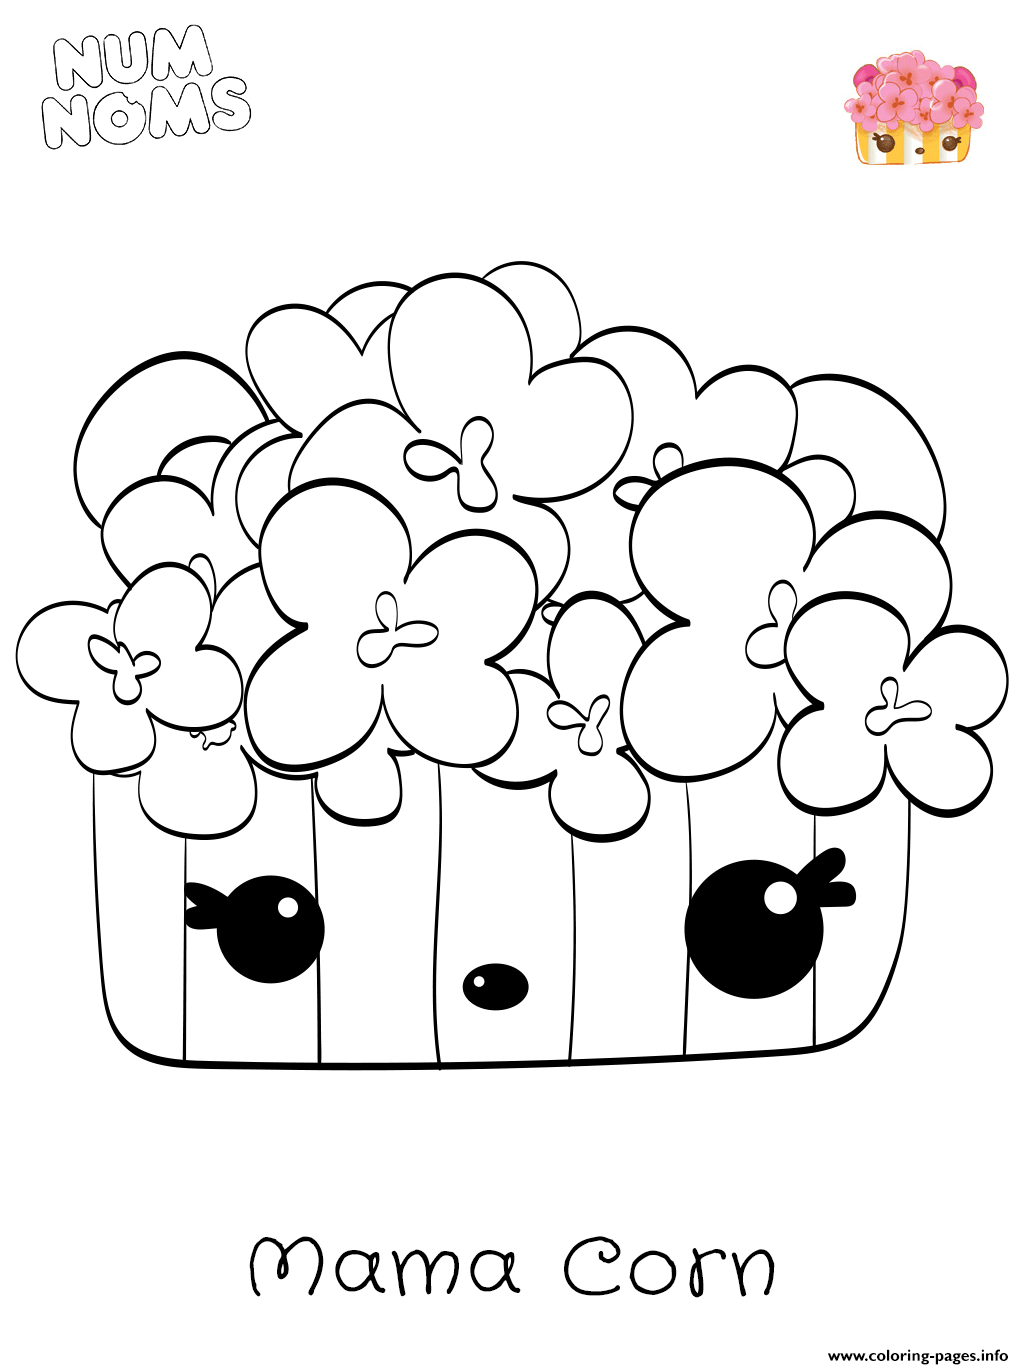 Num Noms Mama Corn From Season 2 Coloring Pages Printable